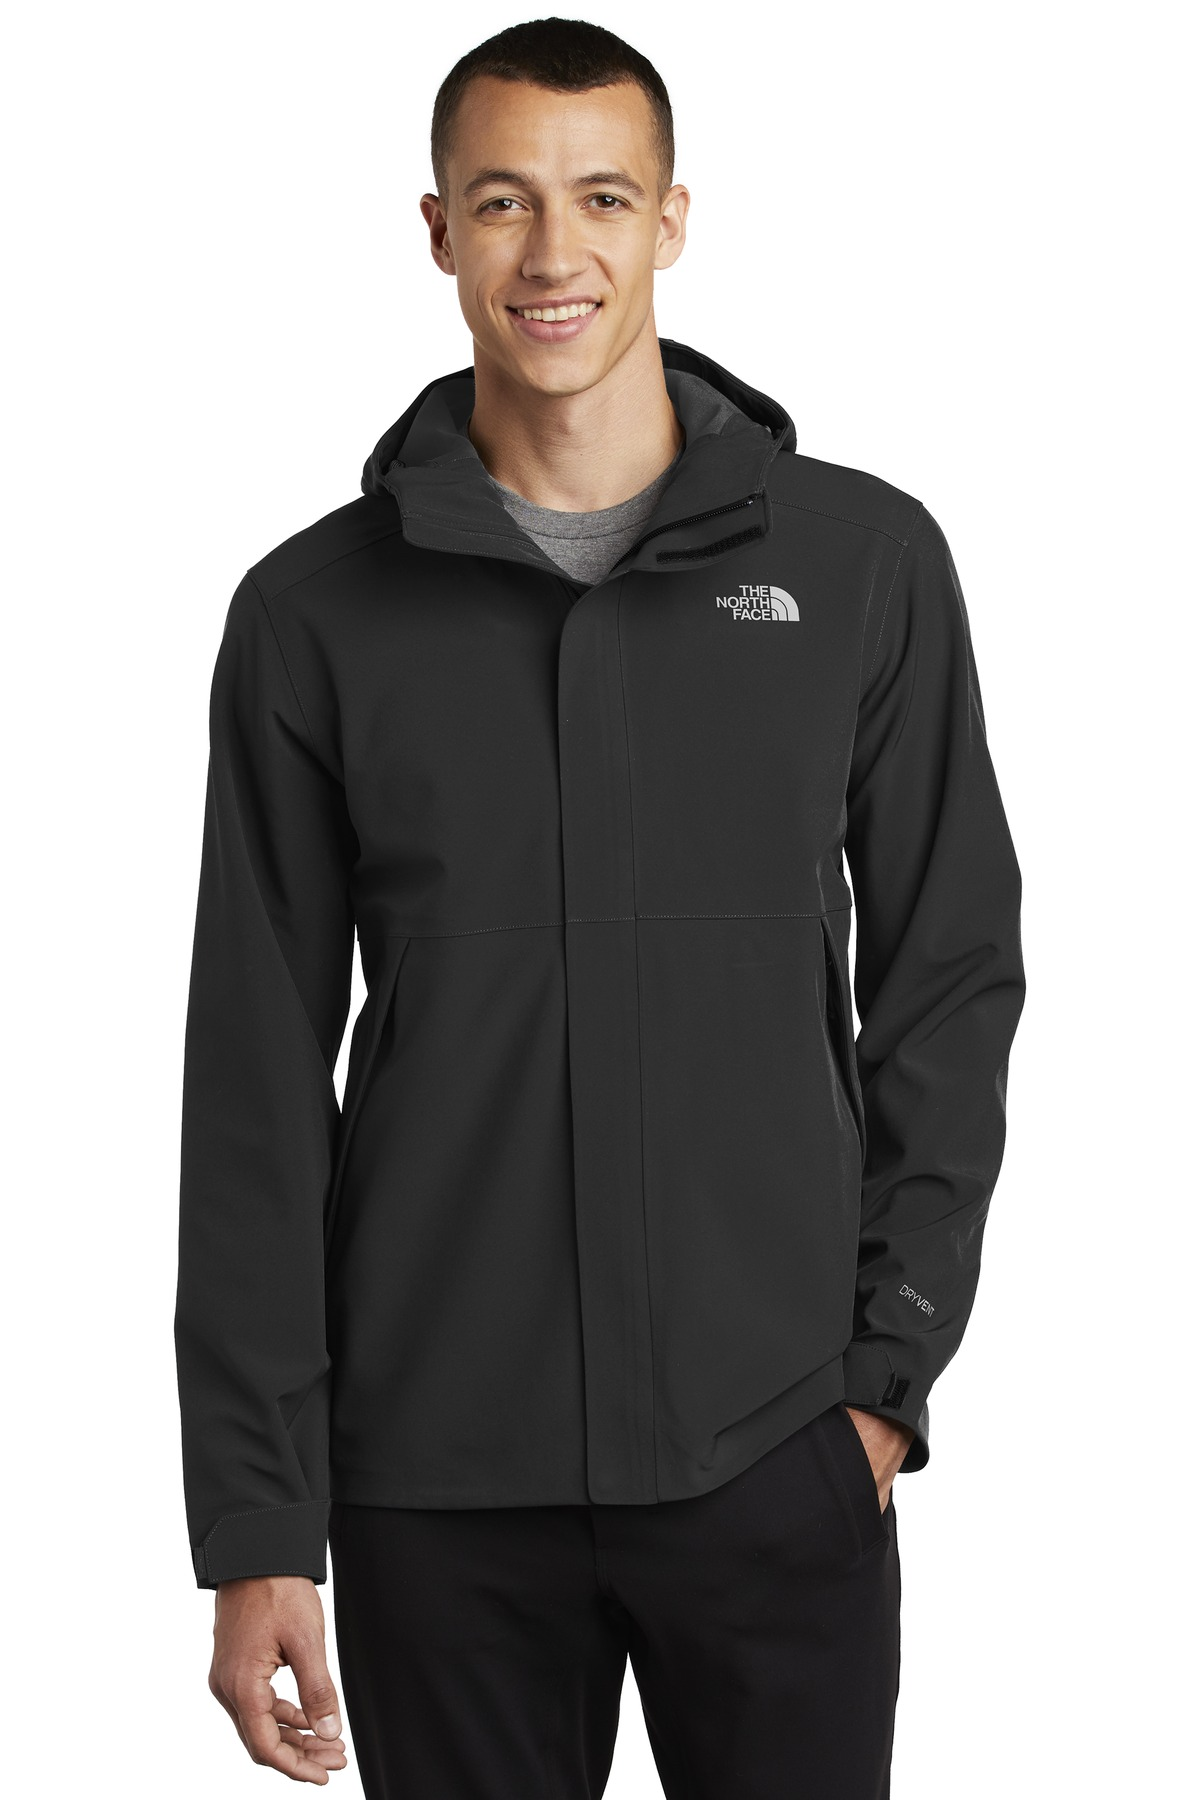 The North Face  ®  Apex DryVent  ™  Jacket NF0A47FI - TNF Black